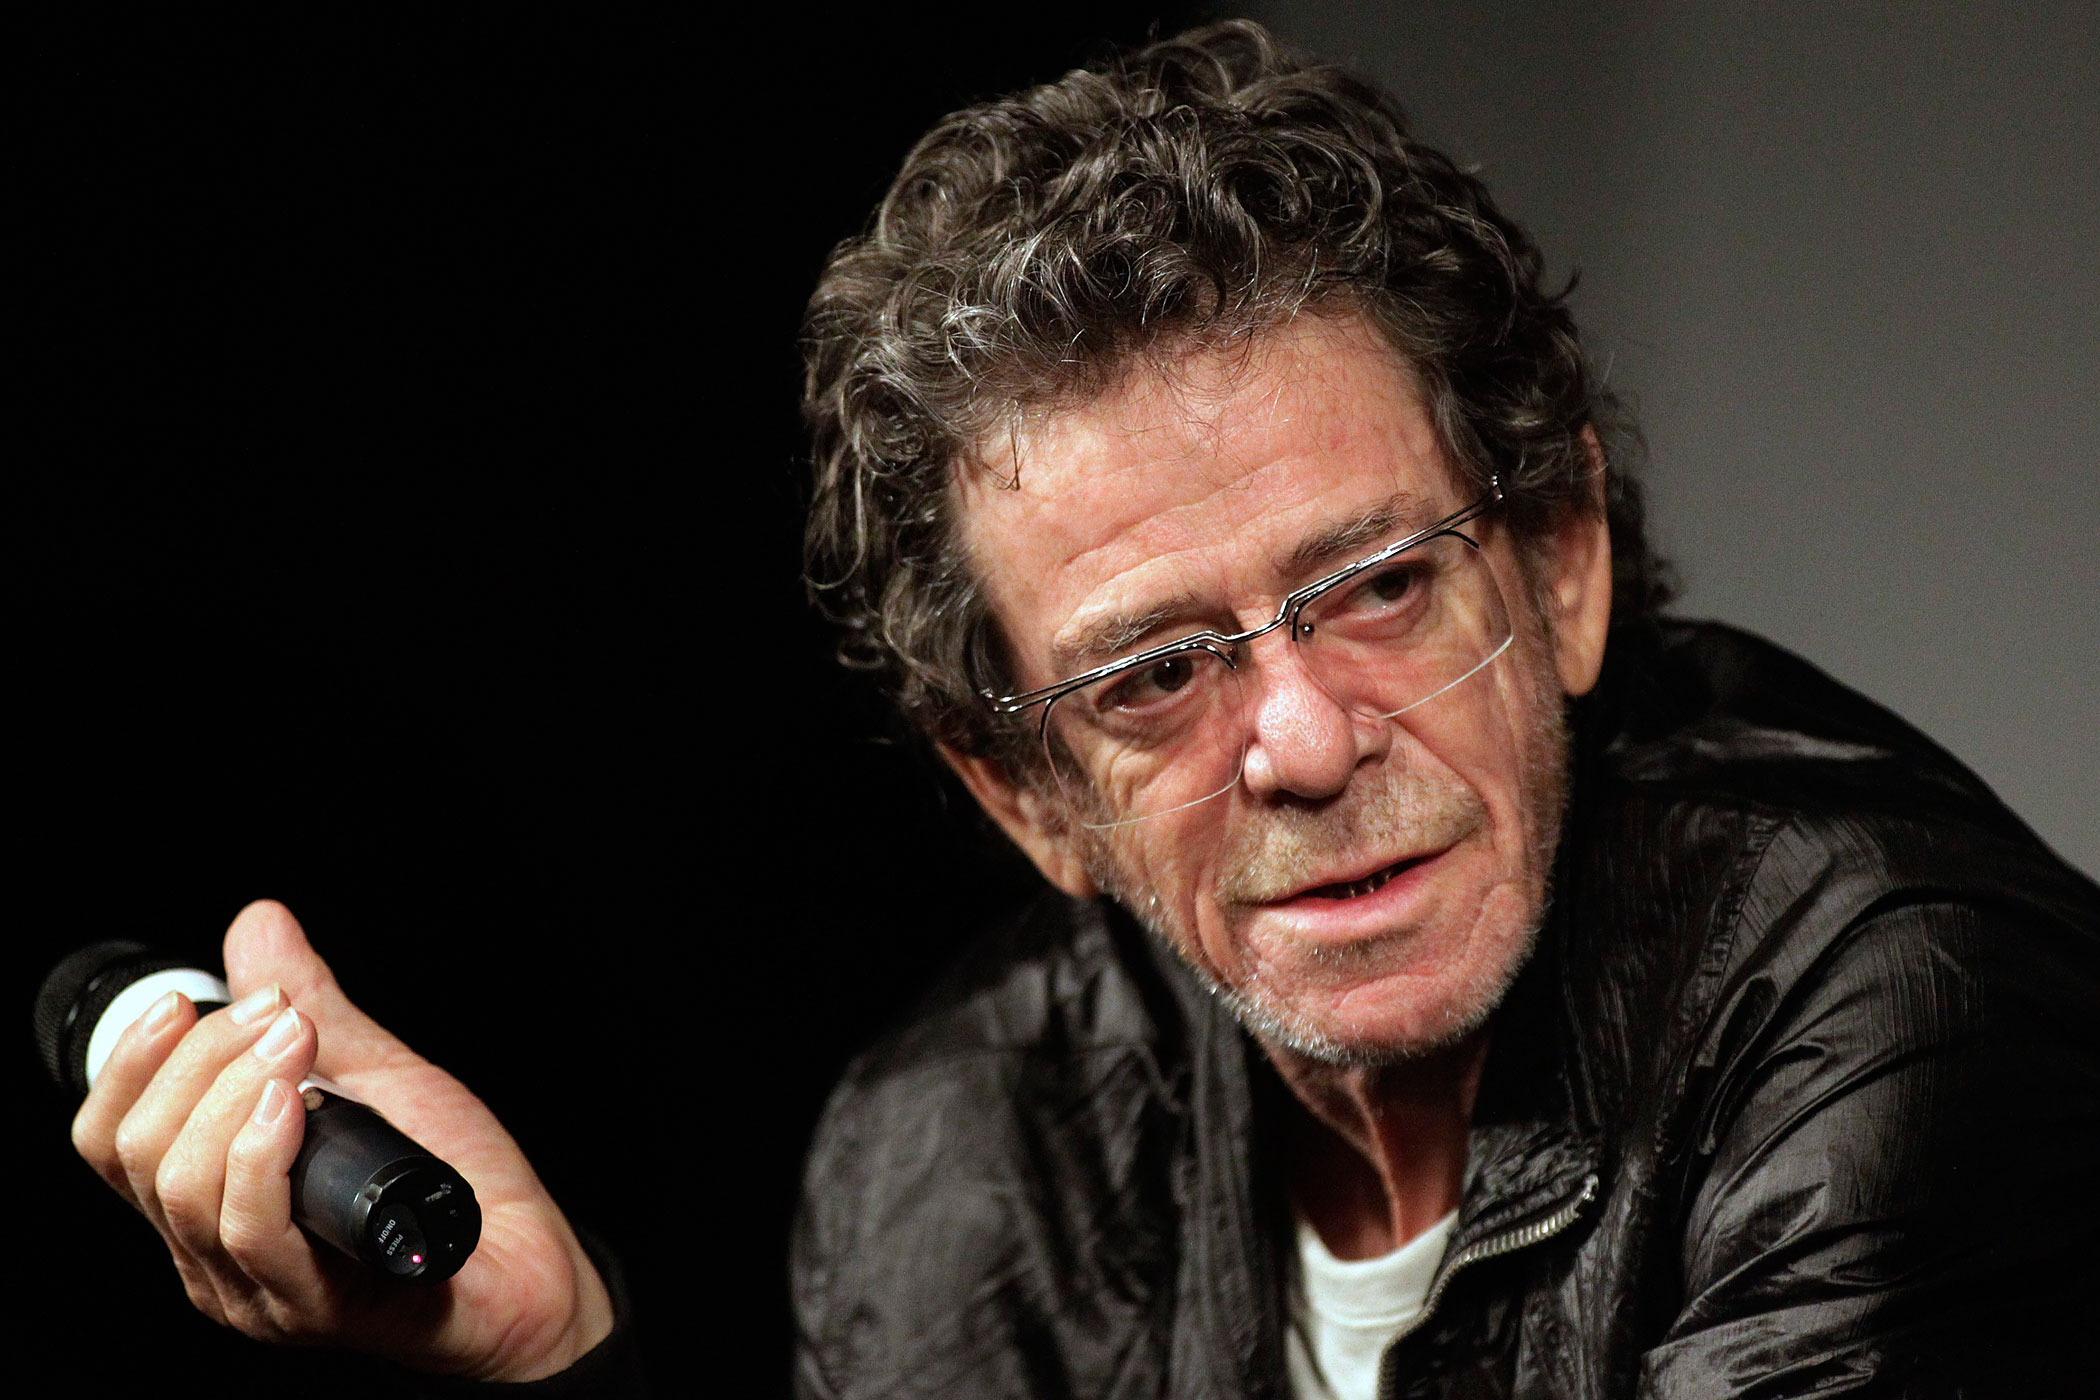 Lou Reed speaks about his film Red Shirley after its public screening at the festival Visons du Reel in Nyon, Switzerland, Tuesday, April 20, 2010.